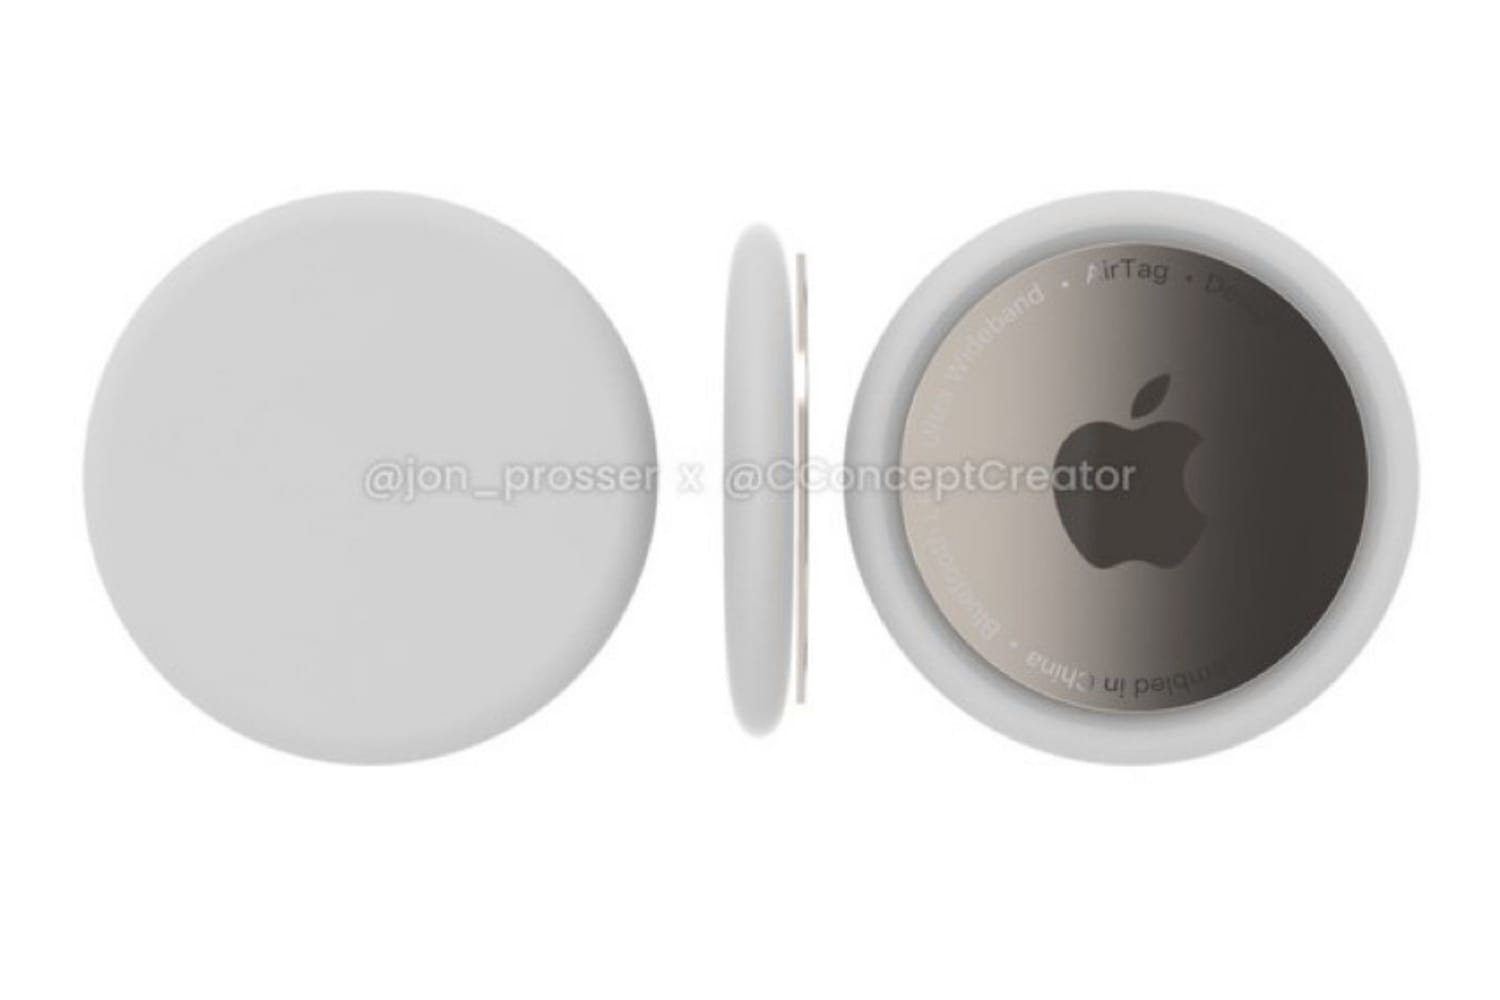 airtags-may-launch-tomorrow-september-15-during-virtual-apple-event-20200914-1